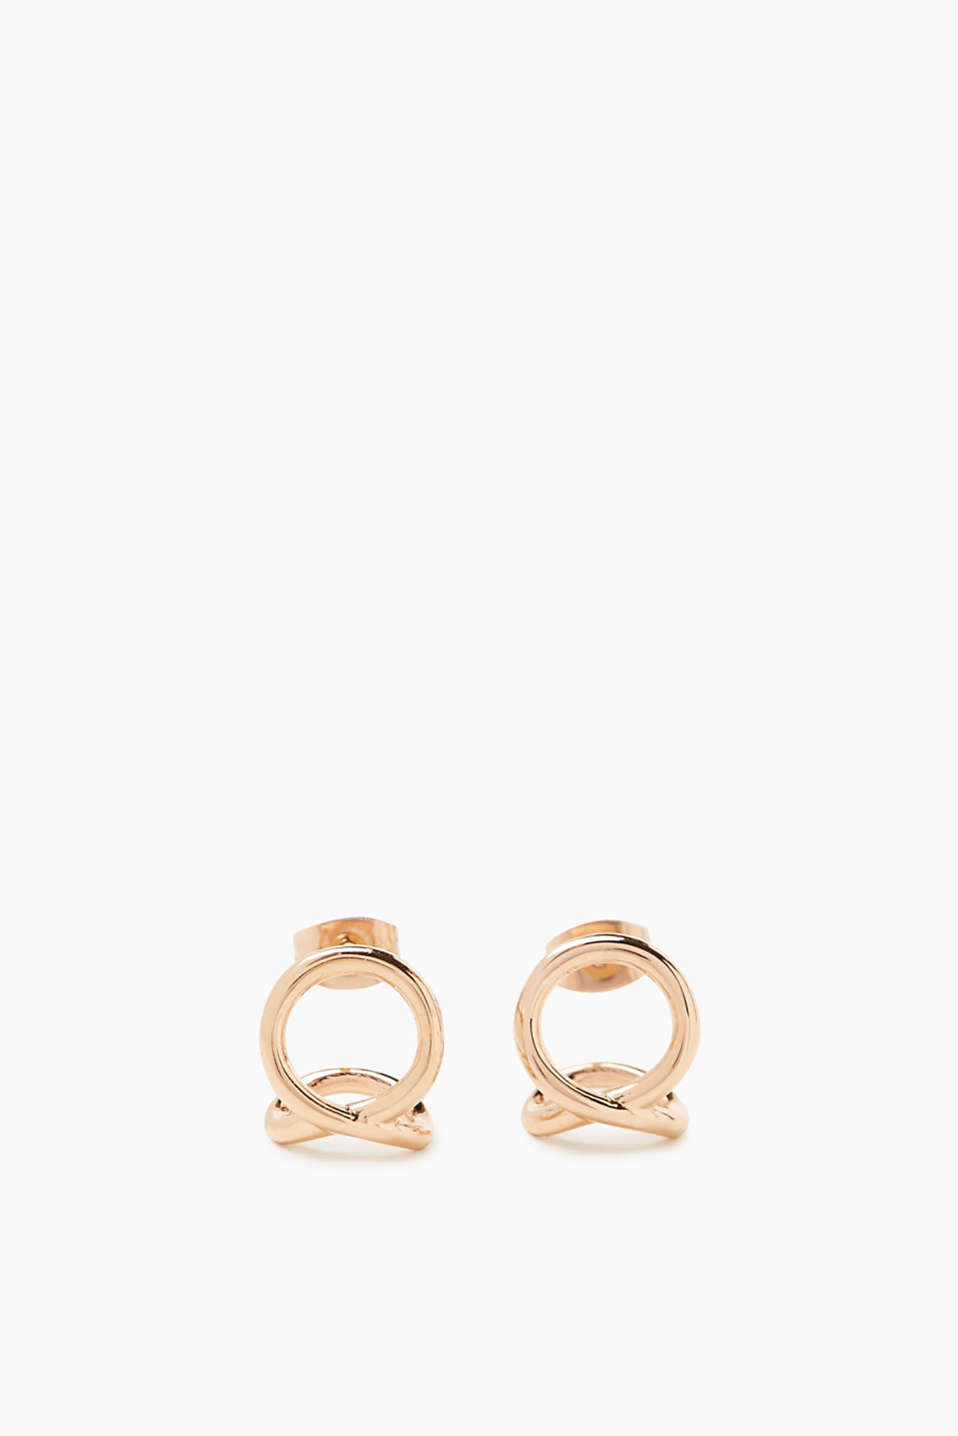 Esprit - Fine rose gold stainless steel stud earrings